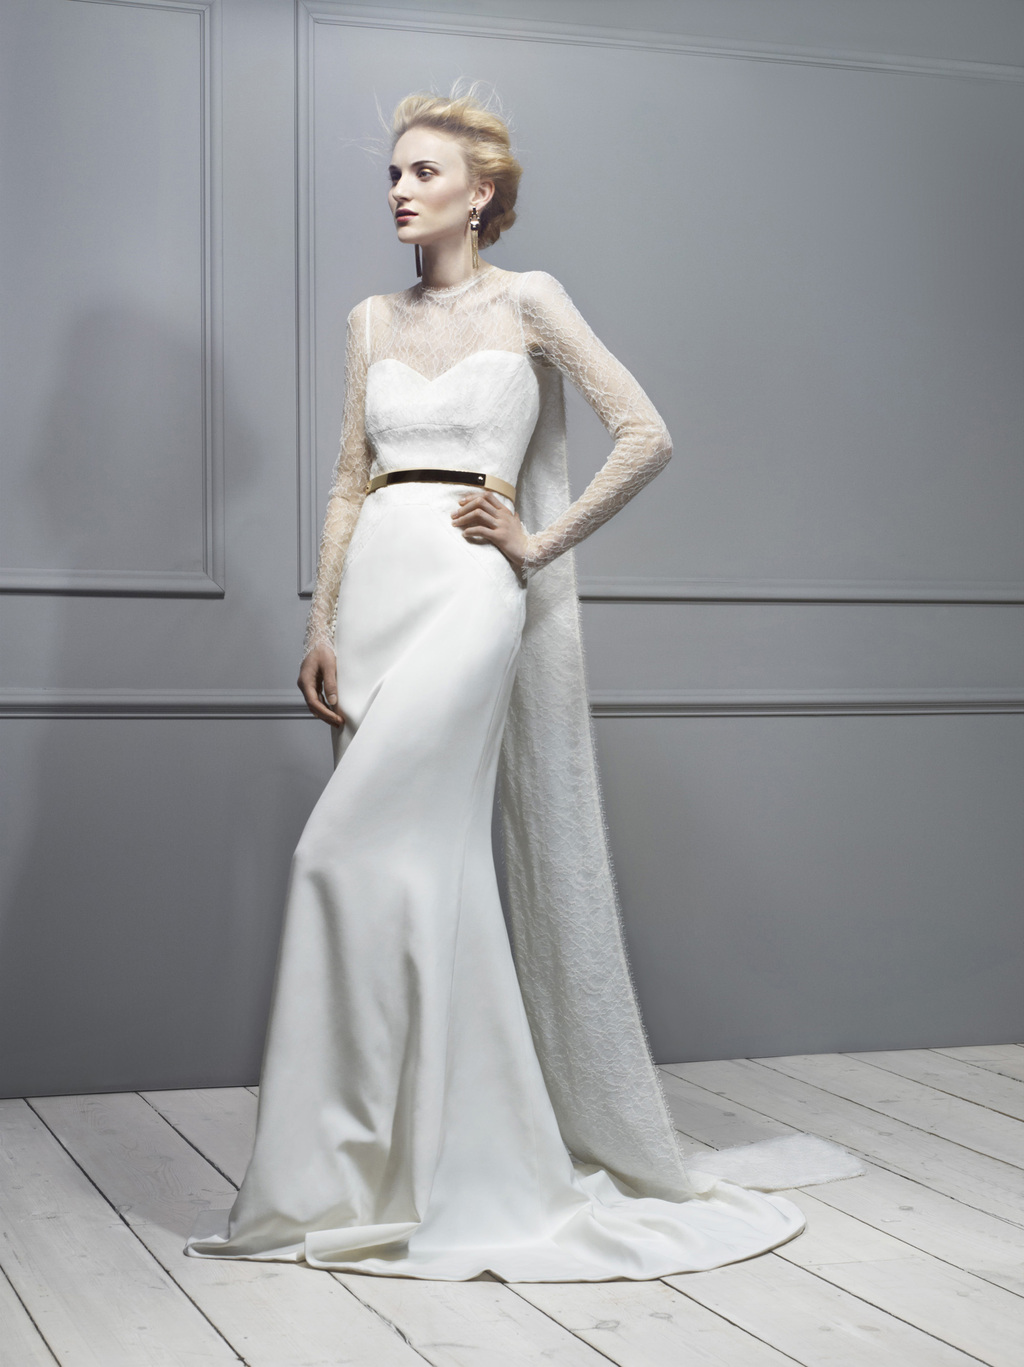 Berardi wedding dress 2013 exclusive bridal designer collection antonio berardi wedding dress 2013 exclusive bridal designer collection from net a porter ombrellifo Images